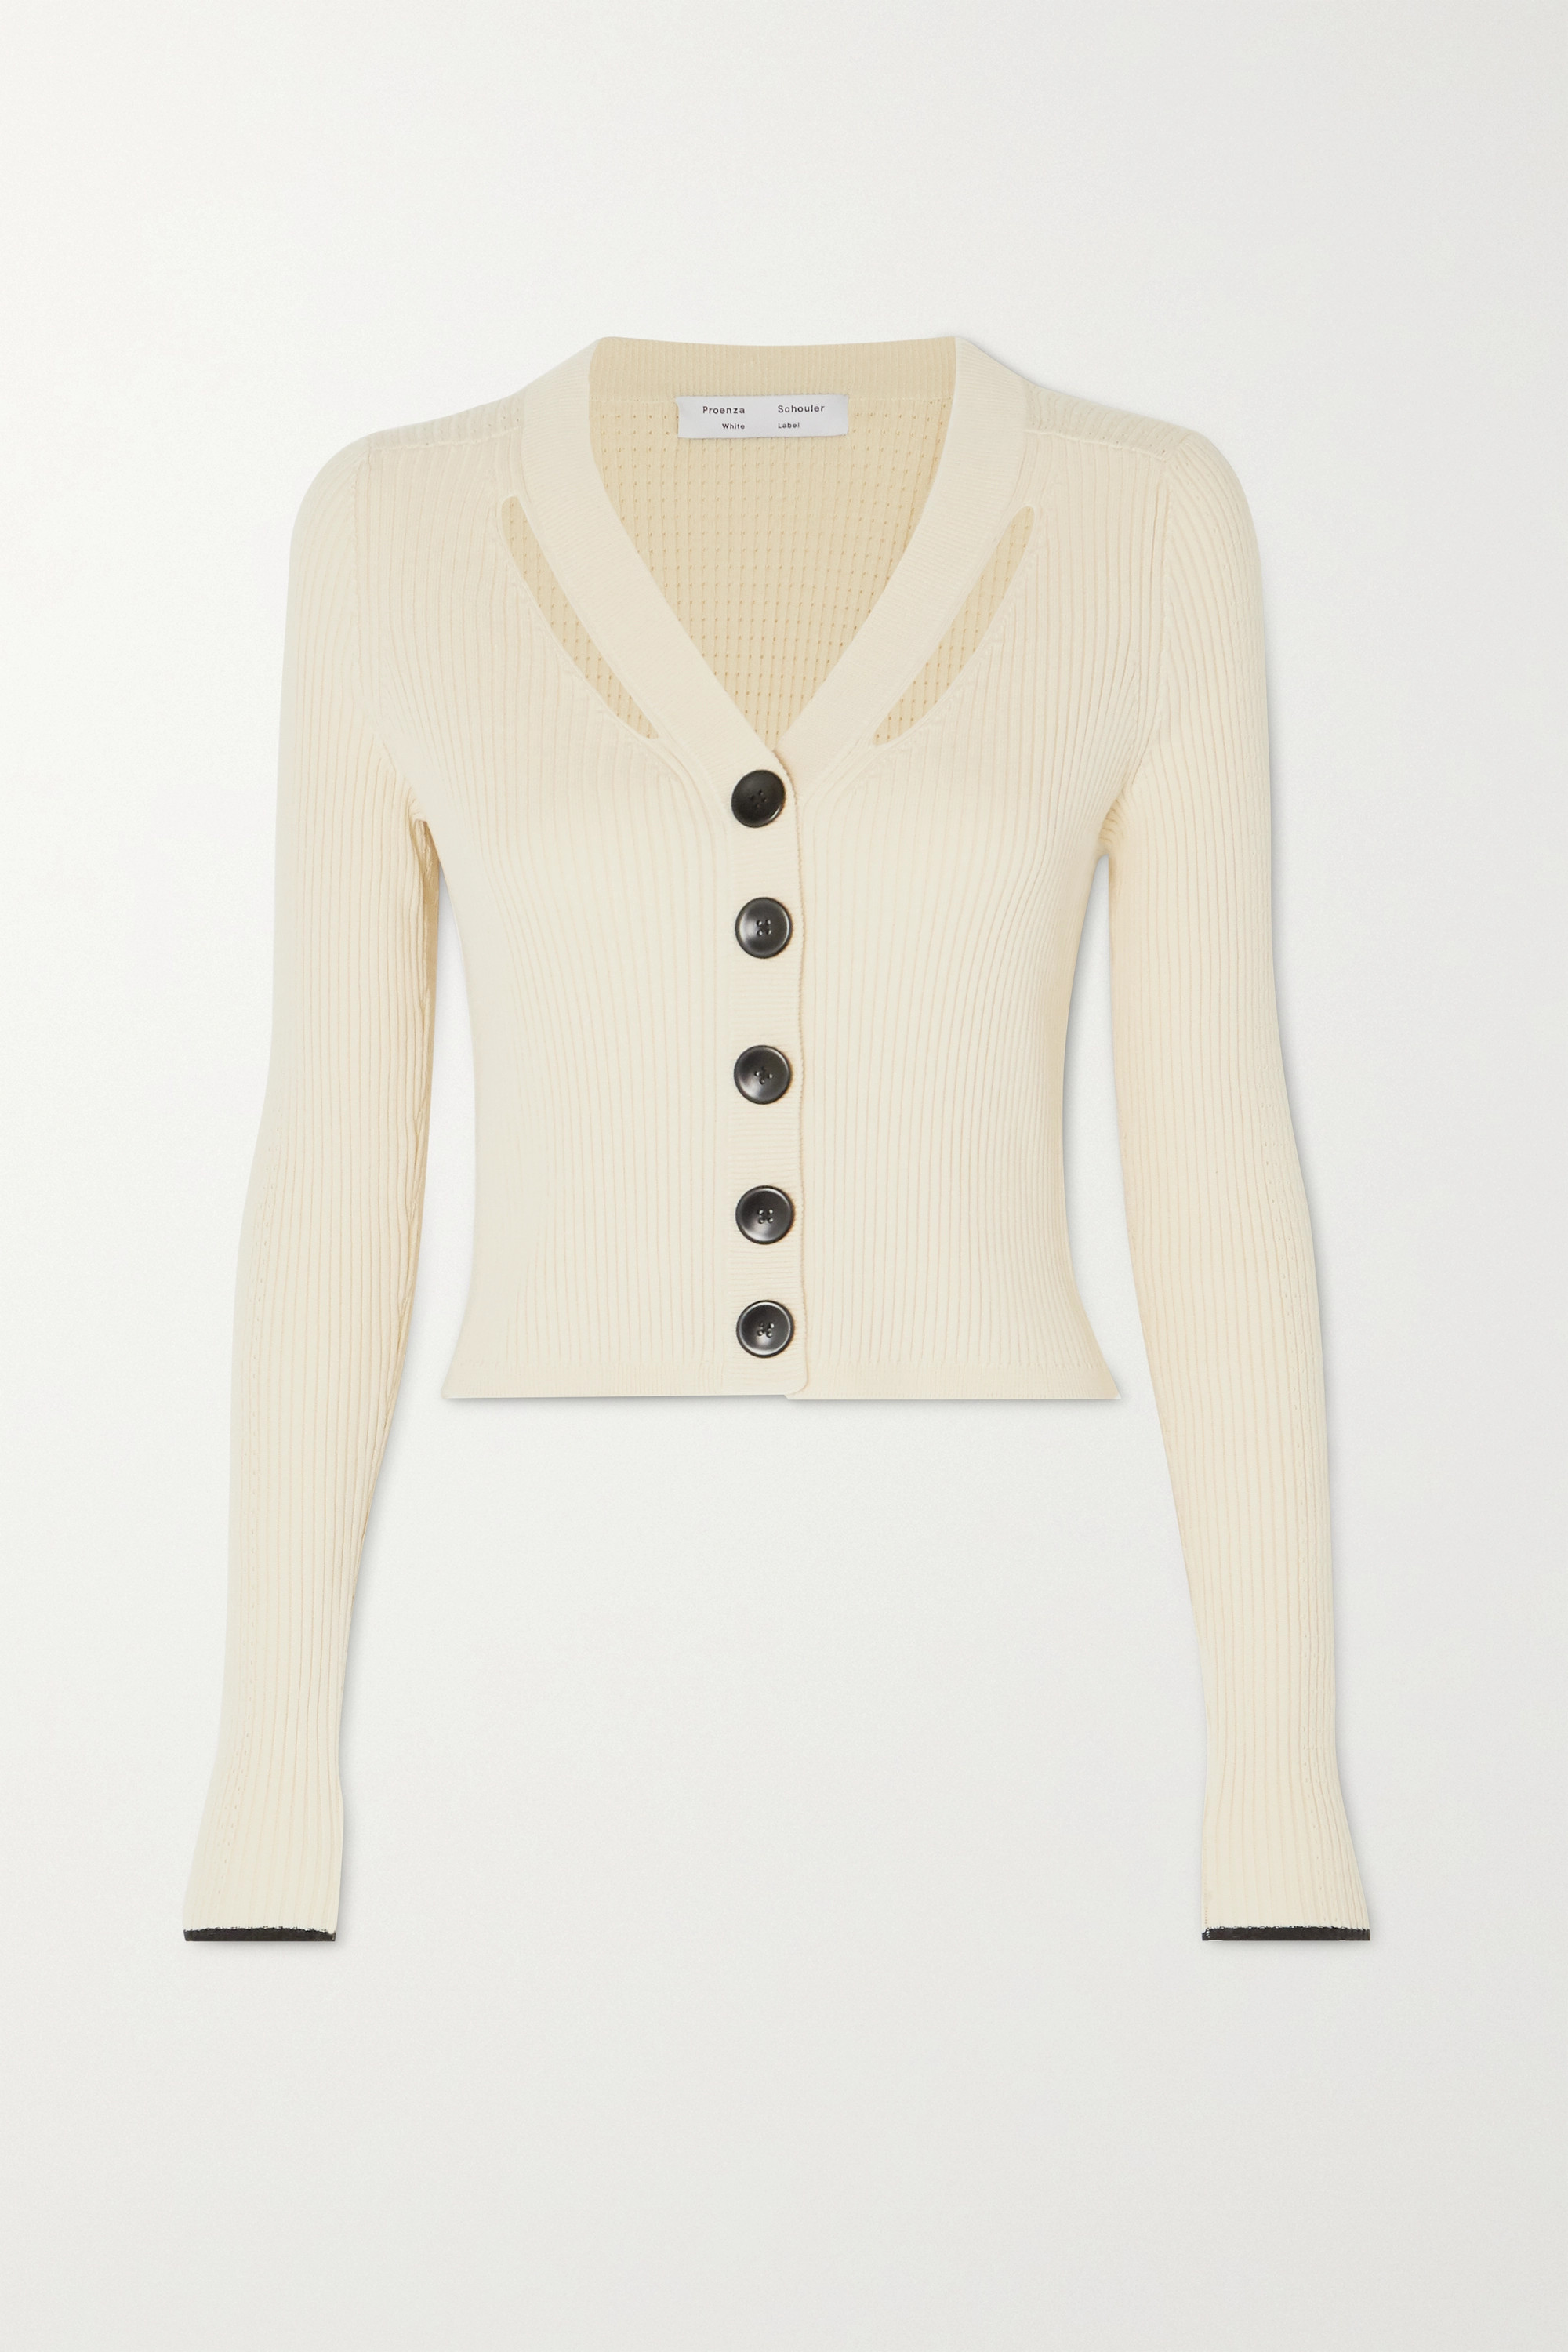 Proenza Schouler White Label Cutout ribbed silk and cotton-blend cardigan